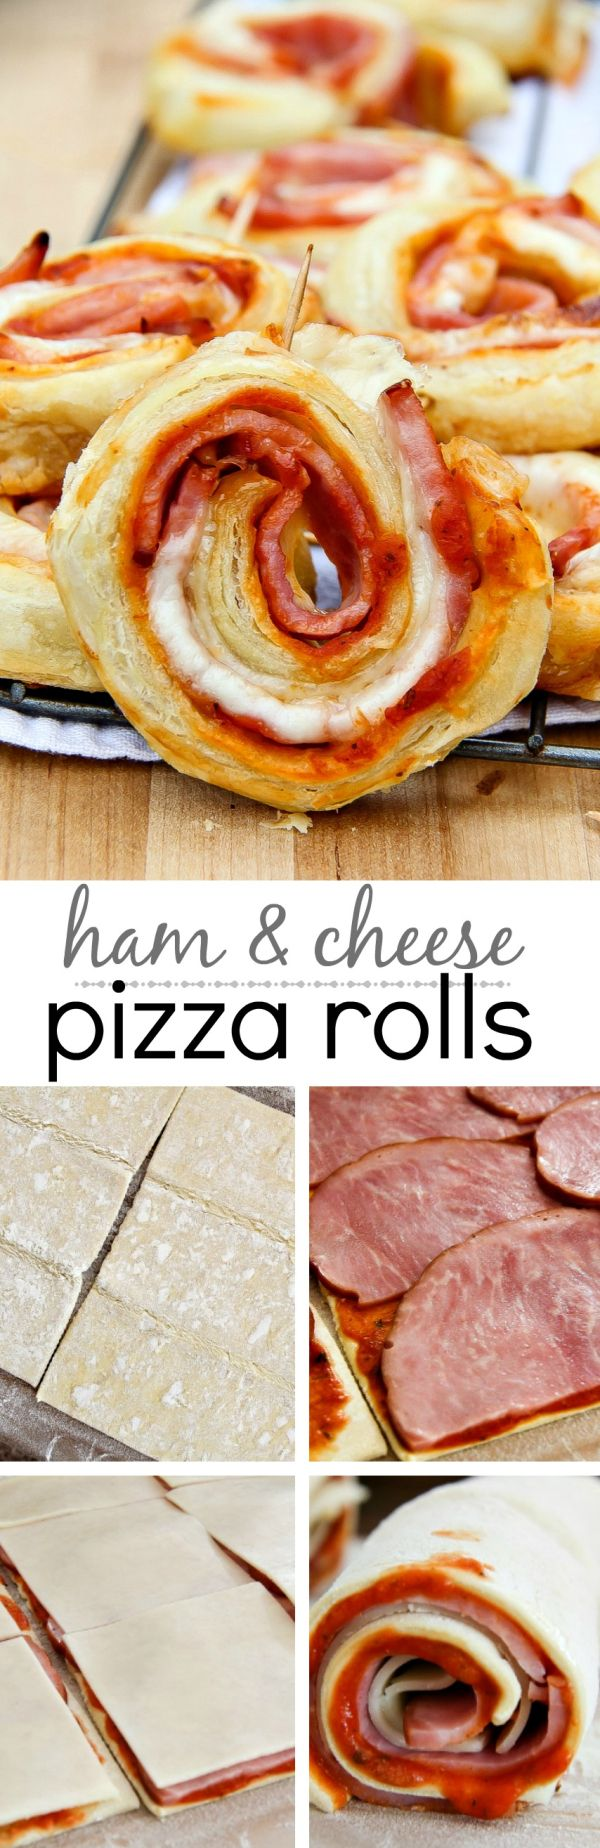 These ham and cheese pizza rolls are the perfect way to use that leftover ham from the holidays   SmithfieldBaconBar     AD